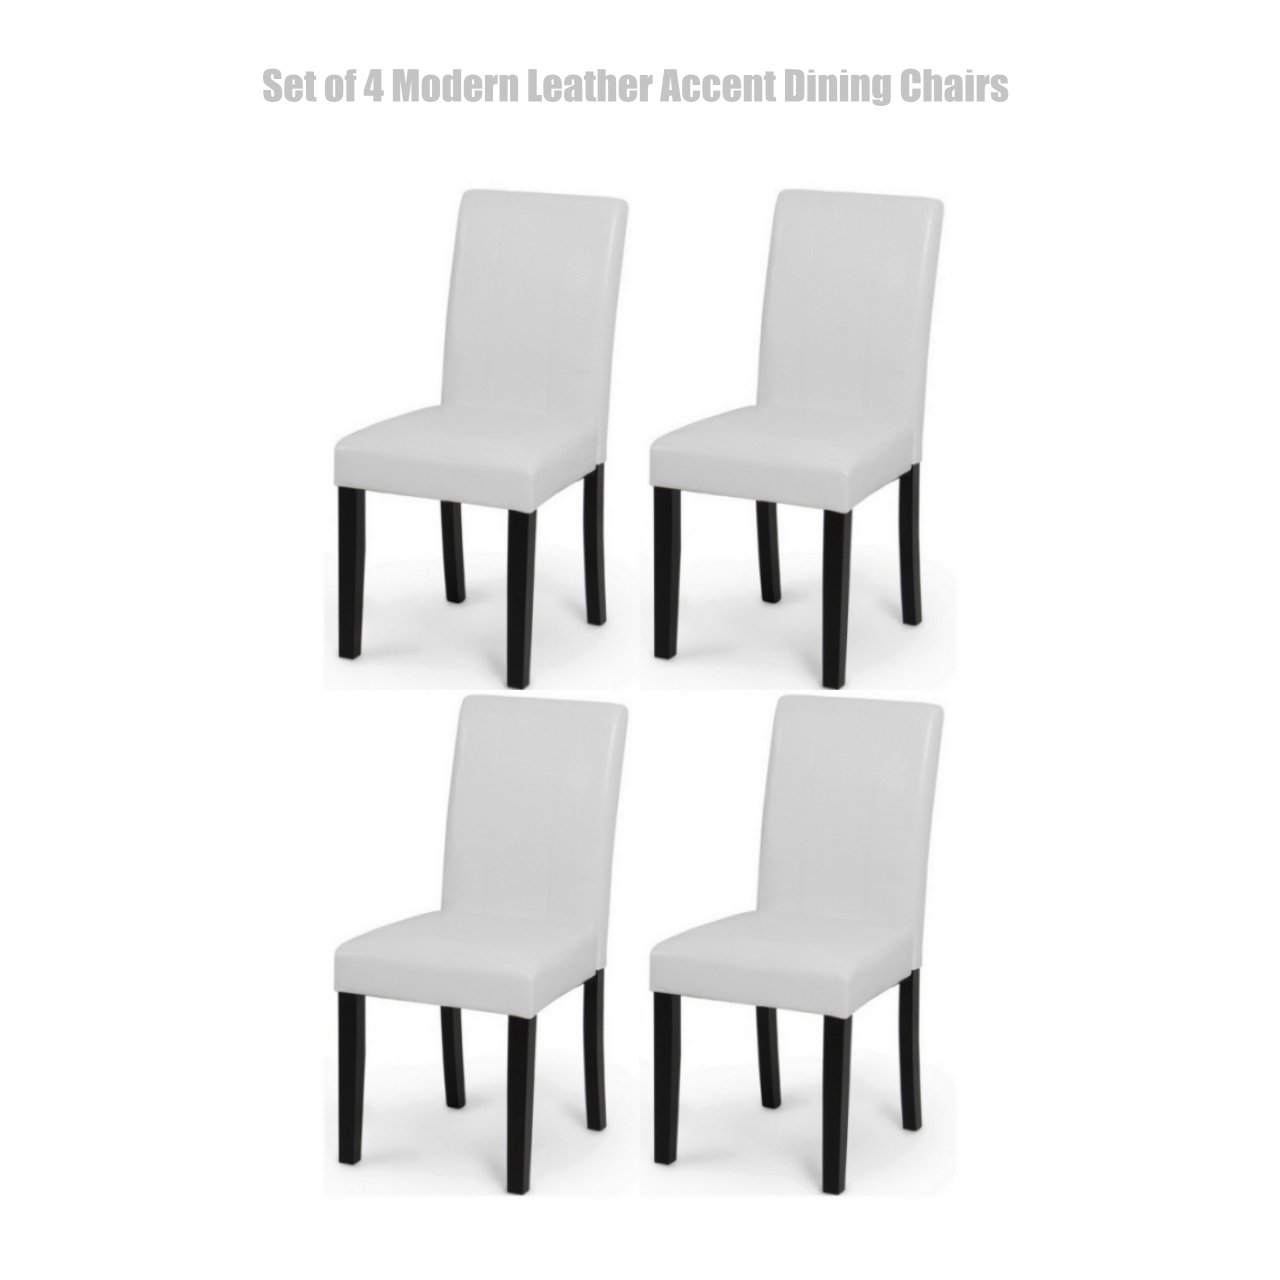 Modern Design High Backrest Dining Chairs Sturdy Hardwood Legs Unique PU Leather High Density Foam Seat Home Office Furniture Set of 4 White #1452wh